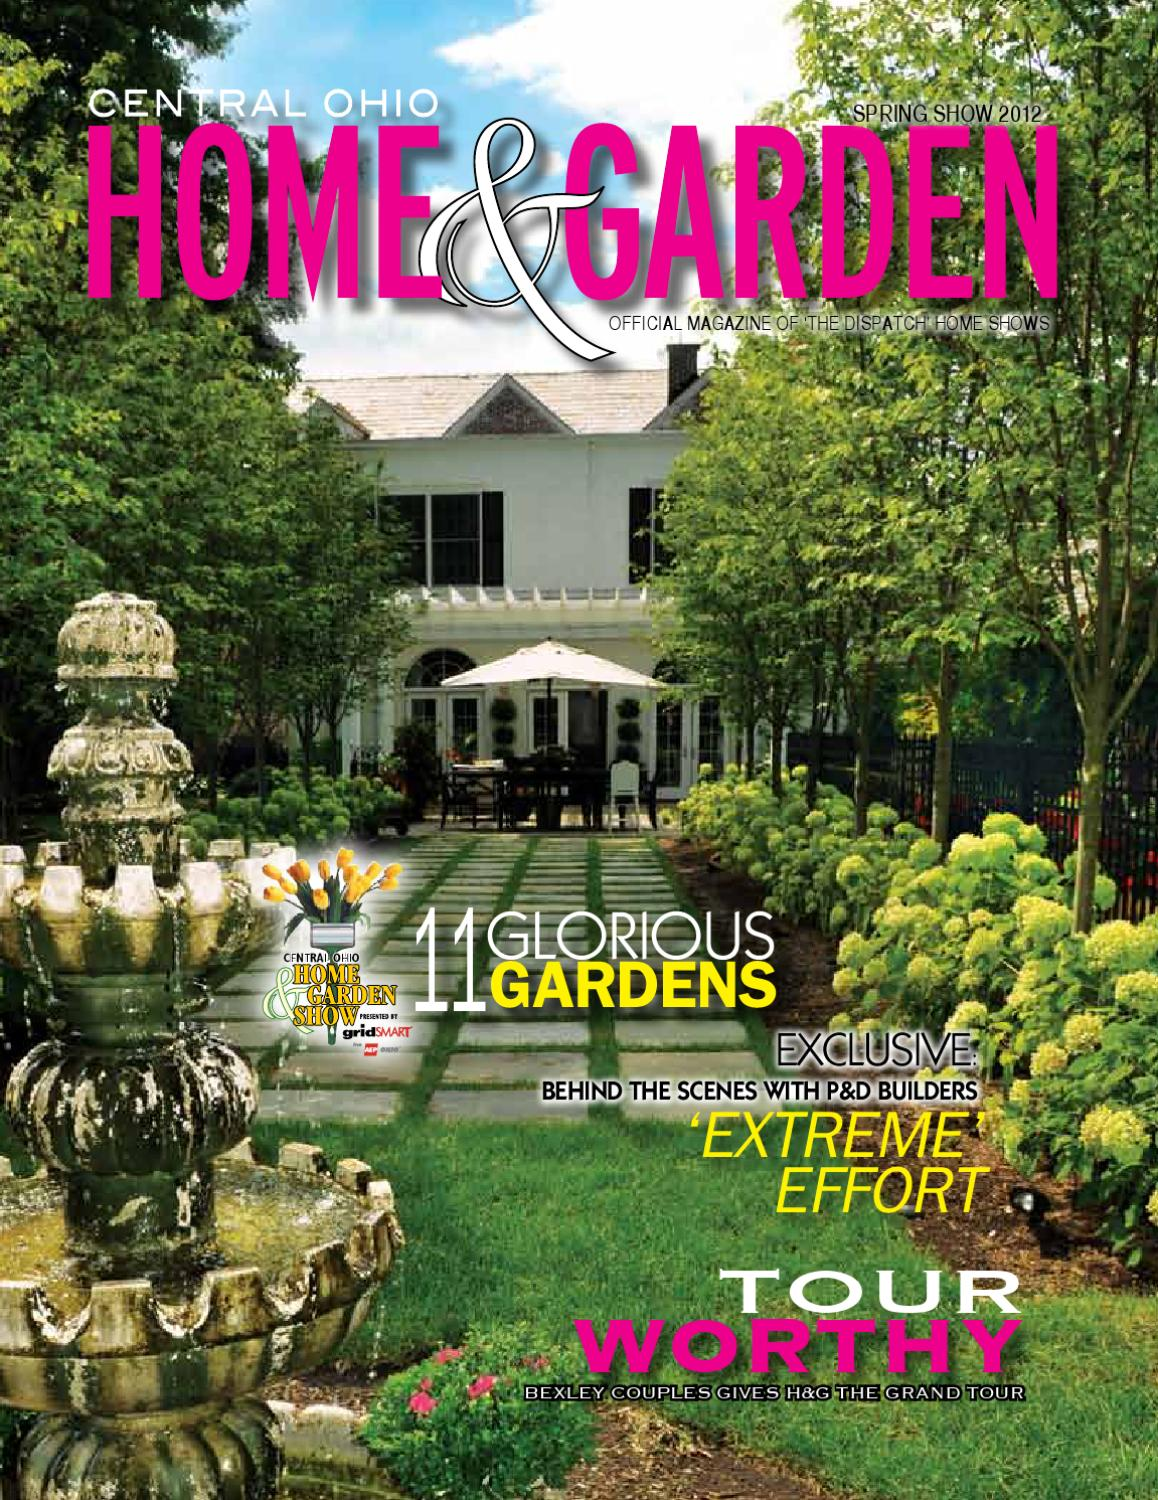 Central Ohio Home And Garden Magazine Spring Show 2012 By The Columbus Dispatch Issuu